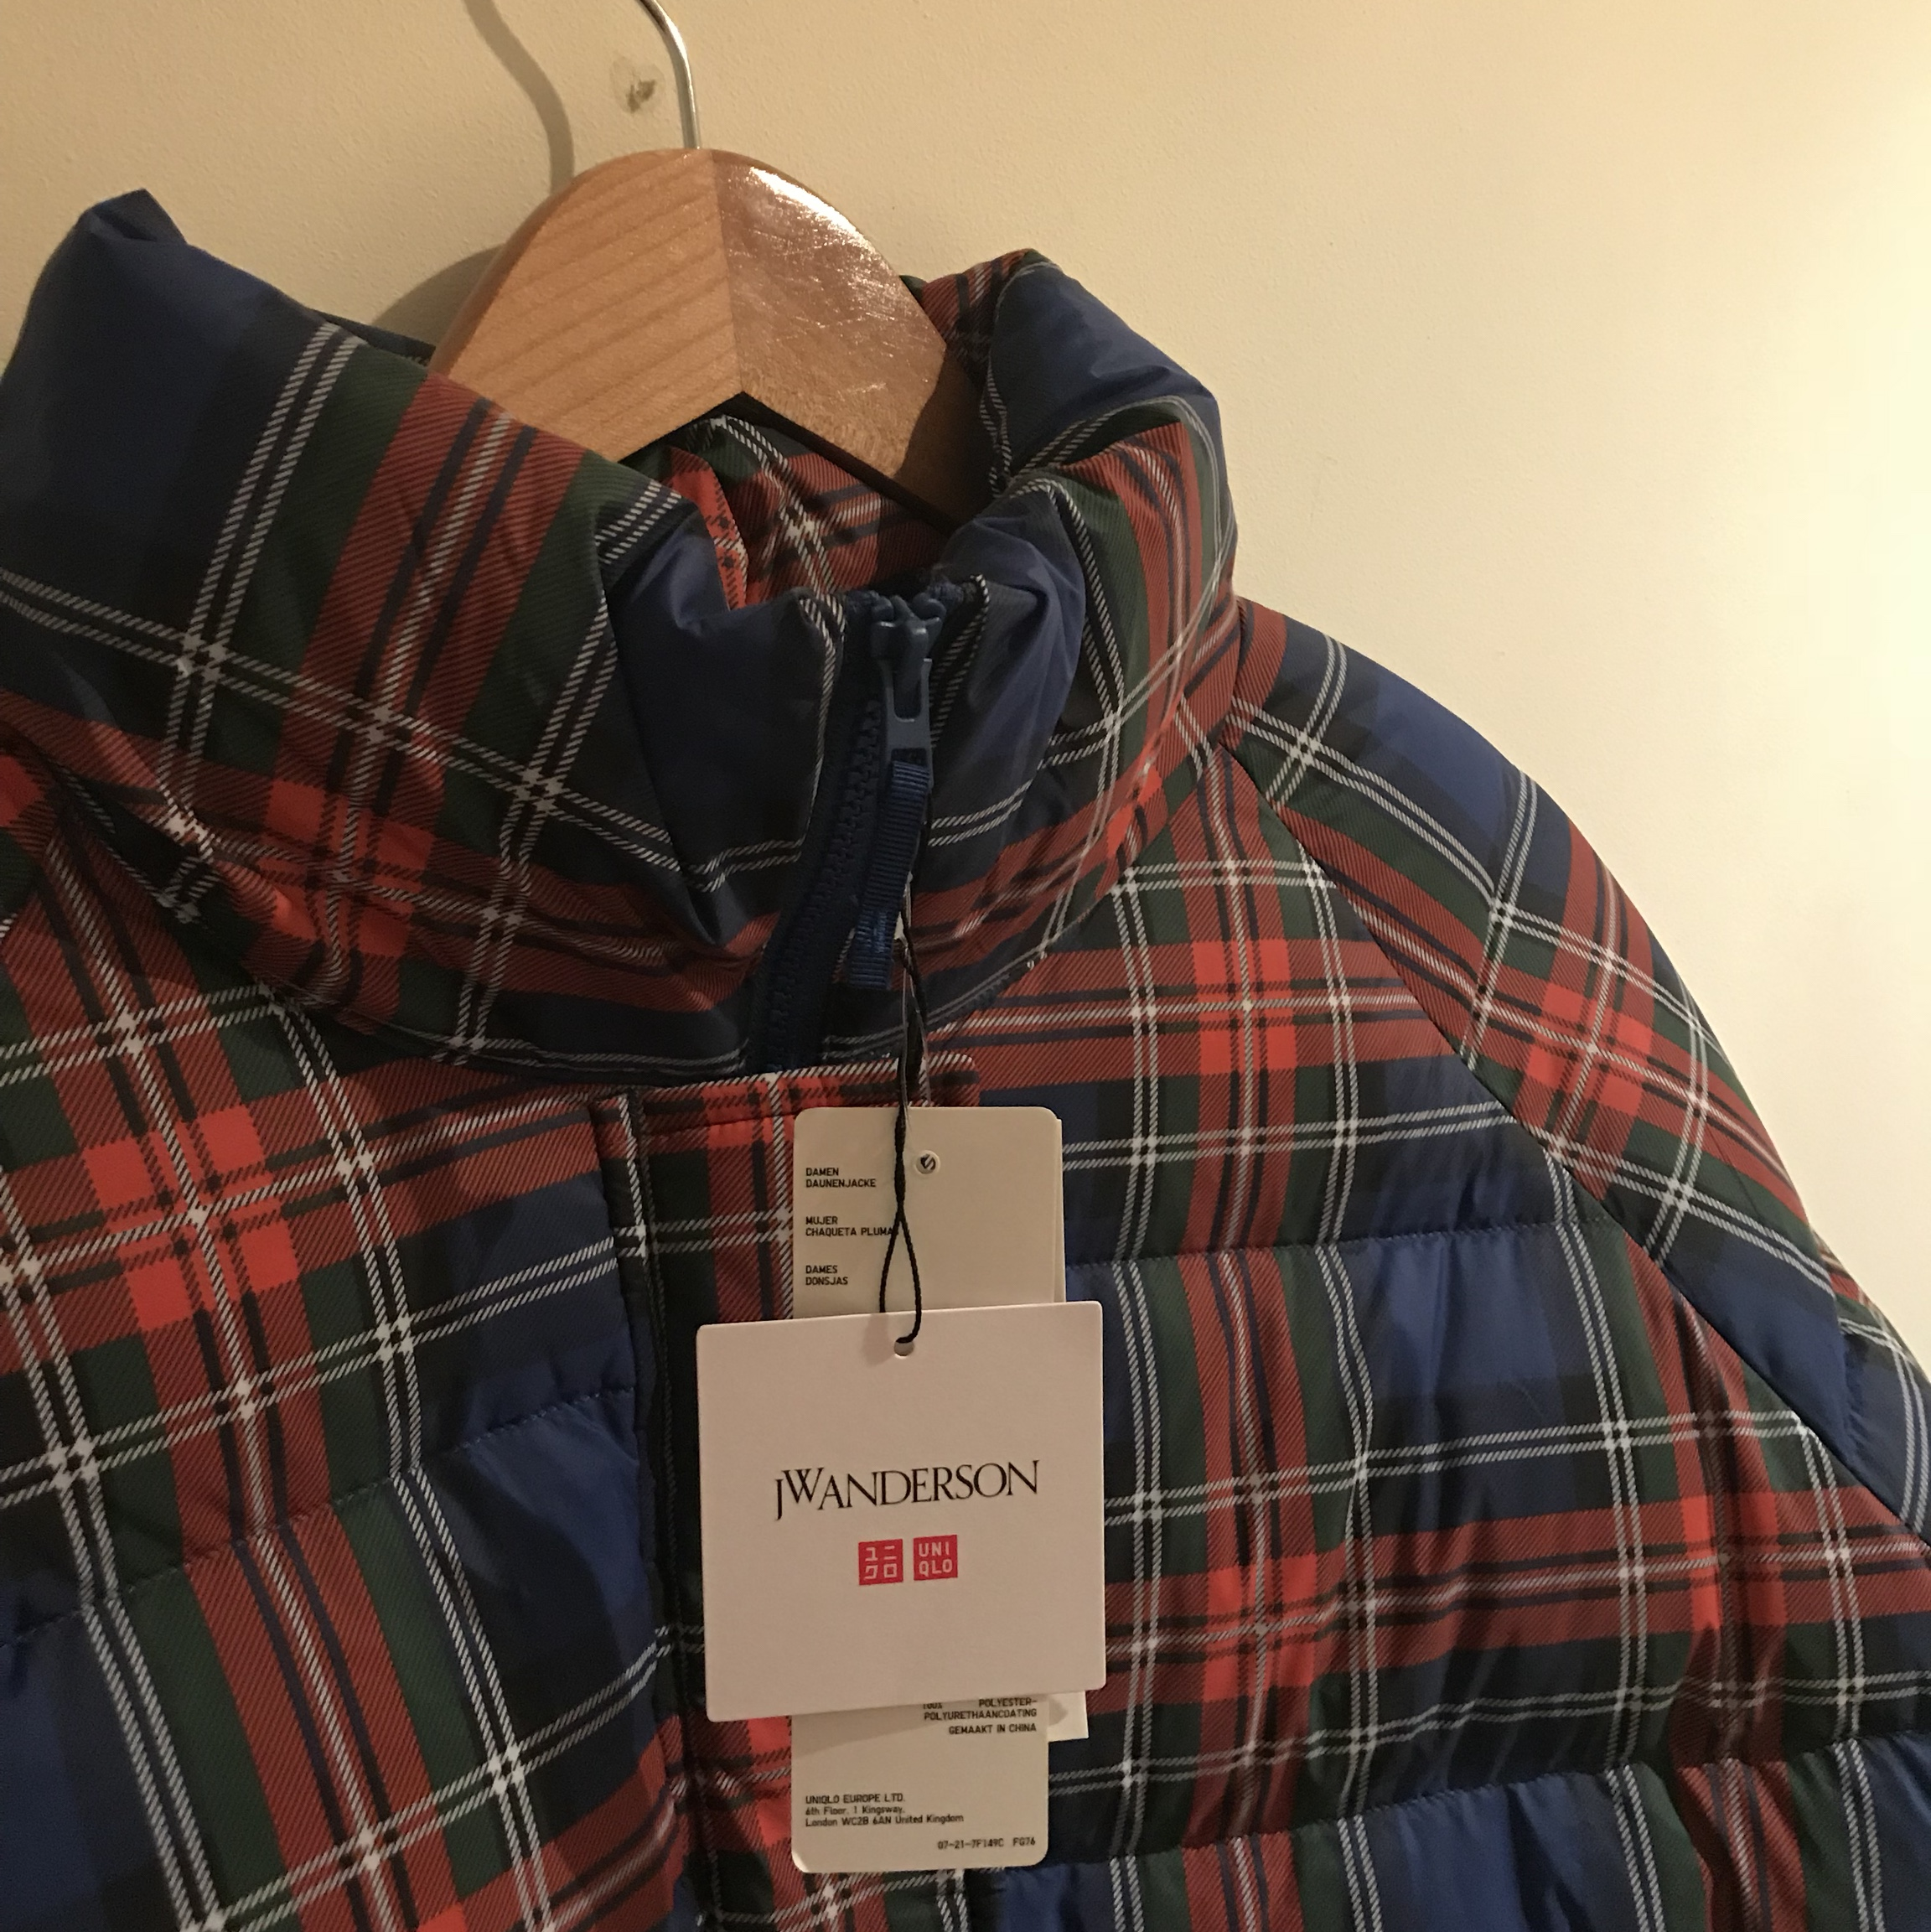 I down UNIQLO J ANDERSON have another Here W light X K1clFJ